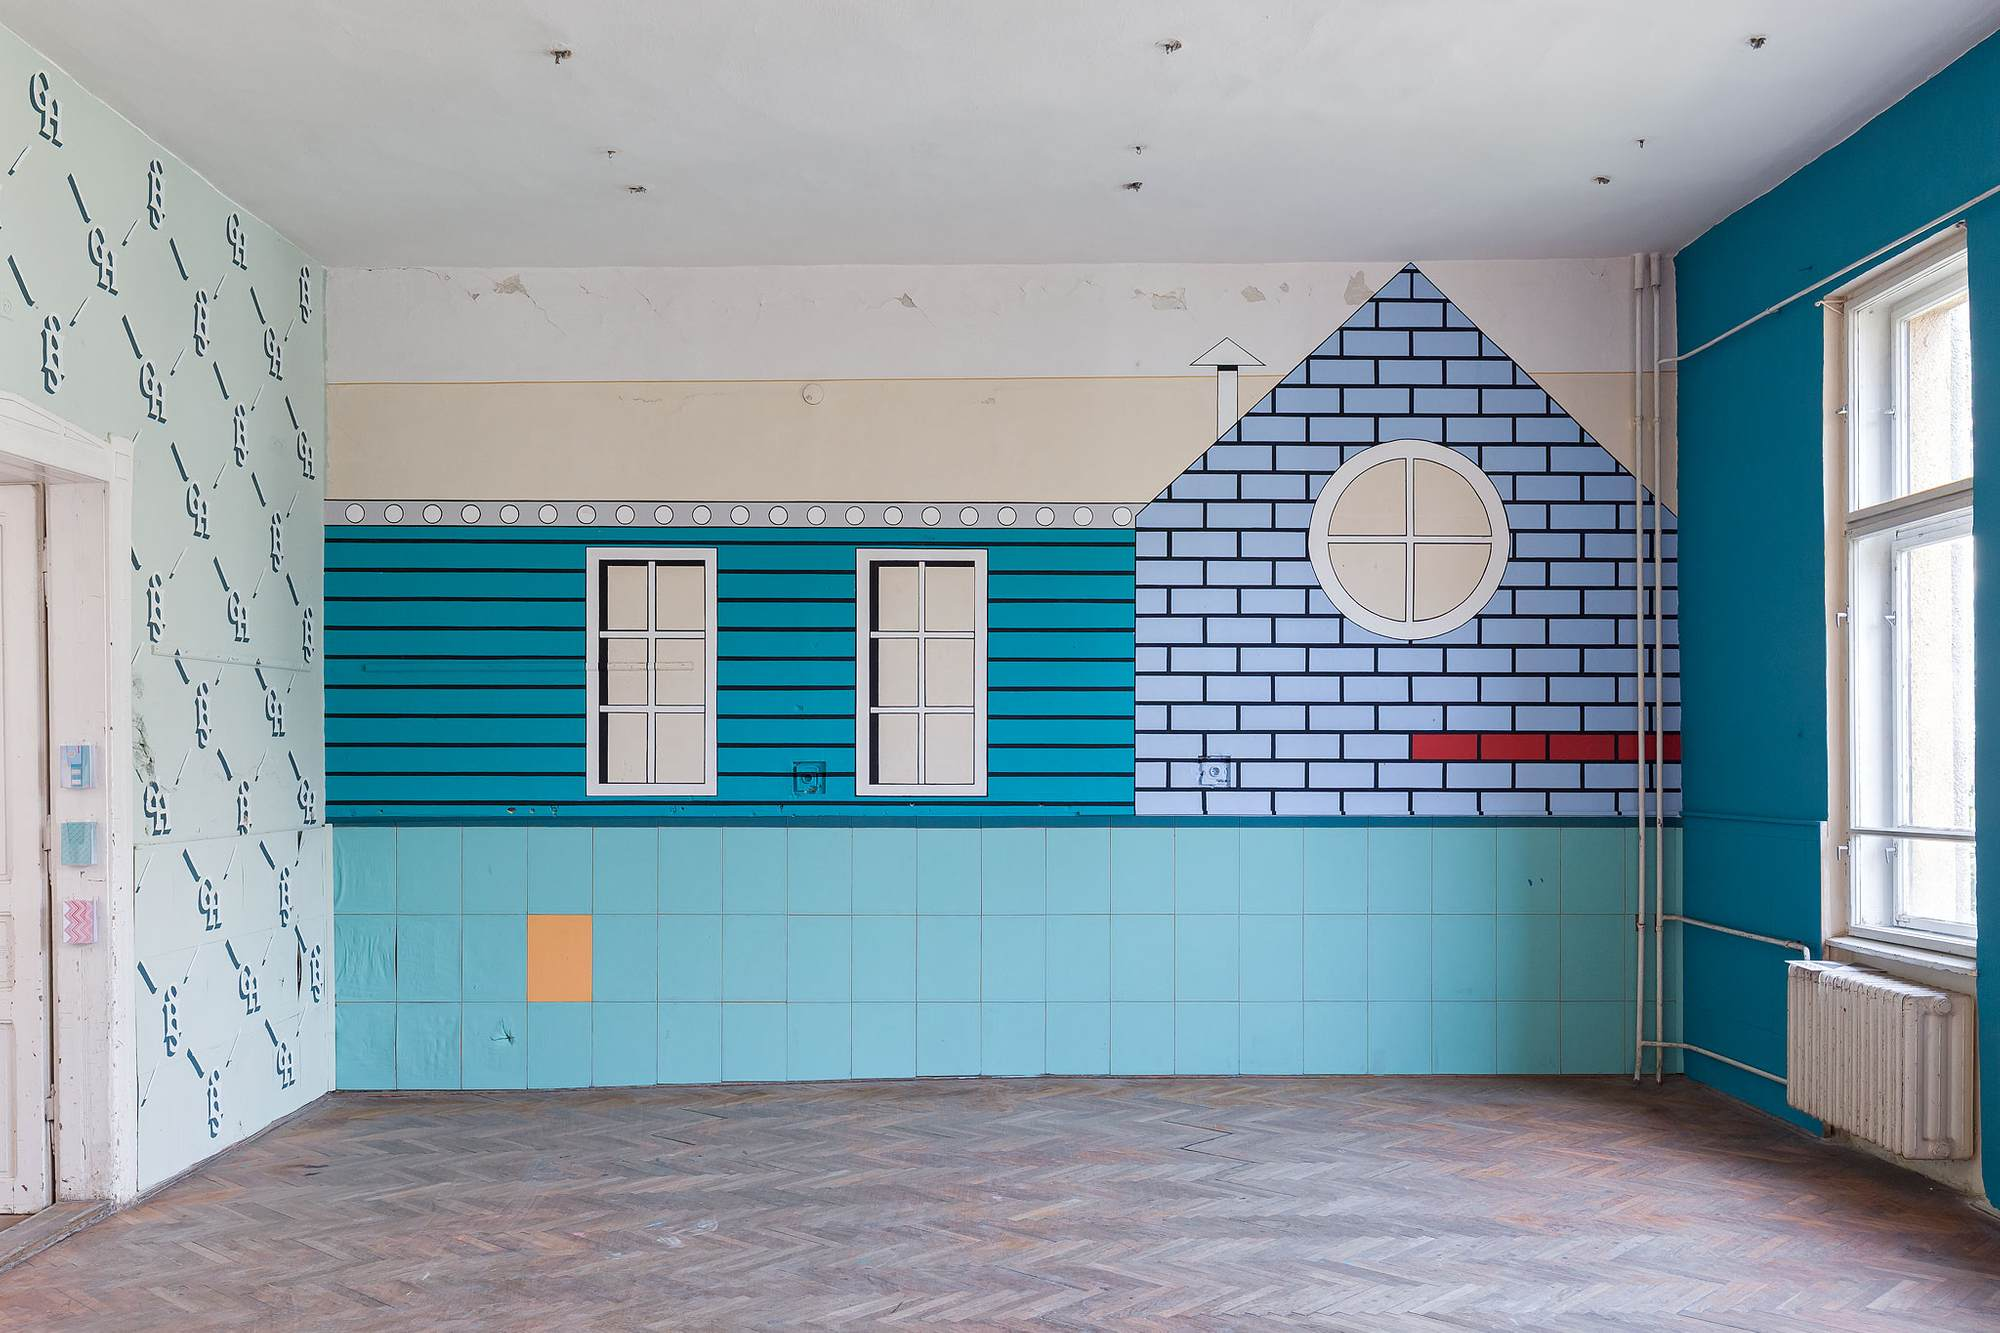 Office Kovacs, Instant Elevation, 12 Walls Exhibition, Veszprém, Hungary, 2018.jpg